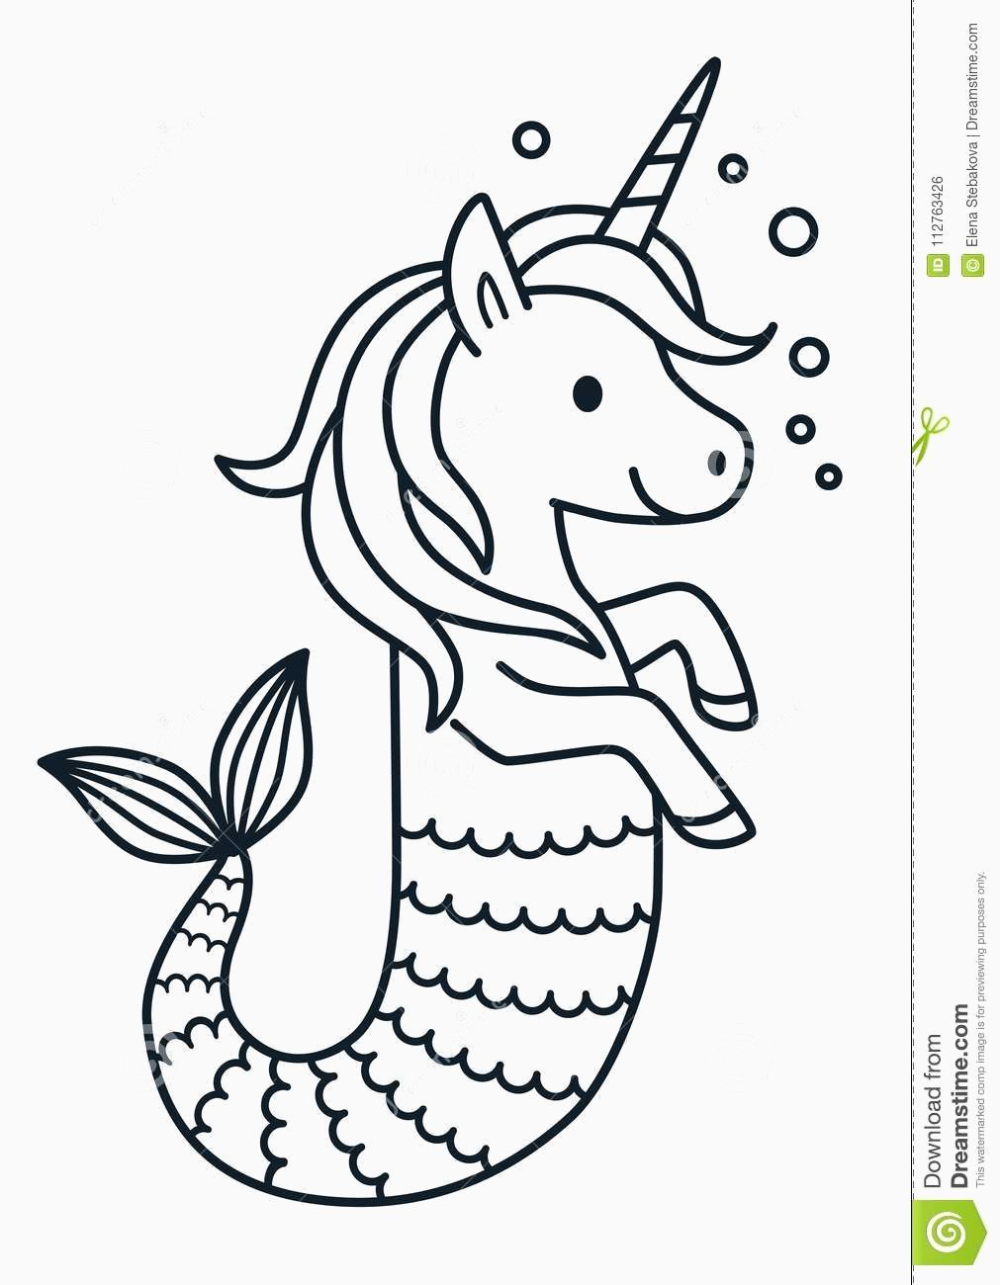 Unicorn Printable Colouring Ferrari Coloring Pages Birthday Cake Page Umbrella Patterns For In 2020 Mermaid Coloring Book Unicorn Coloring Pages Mermaid Coloring Pages